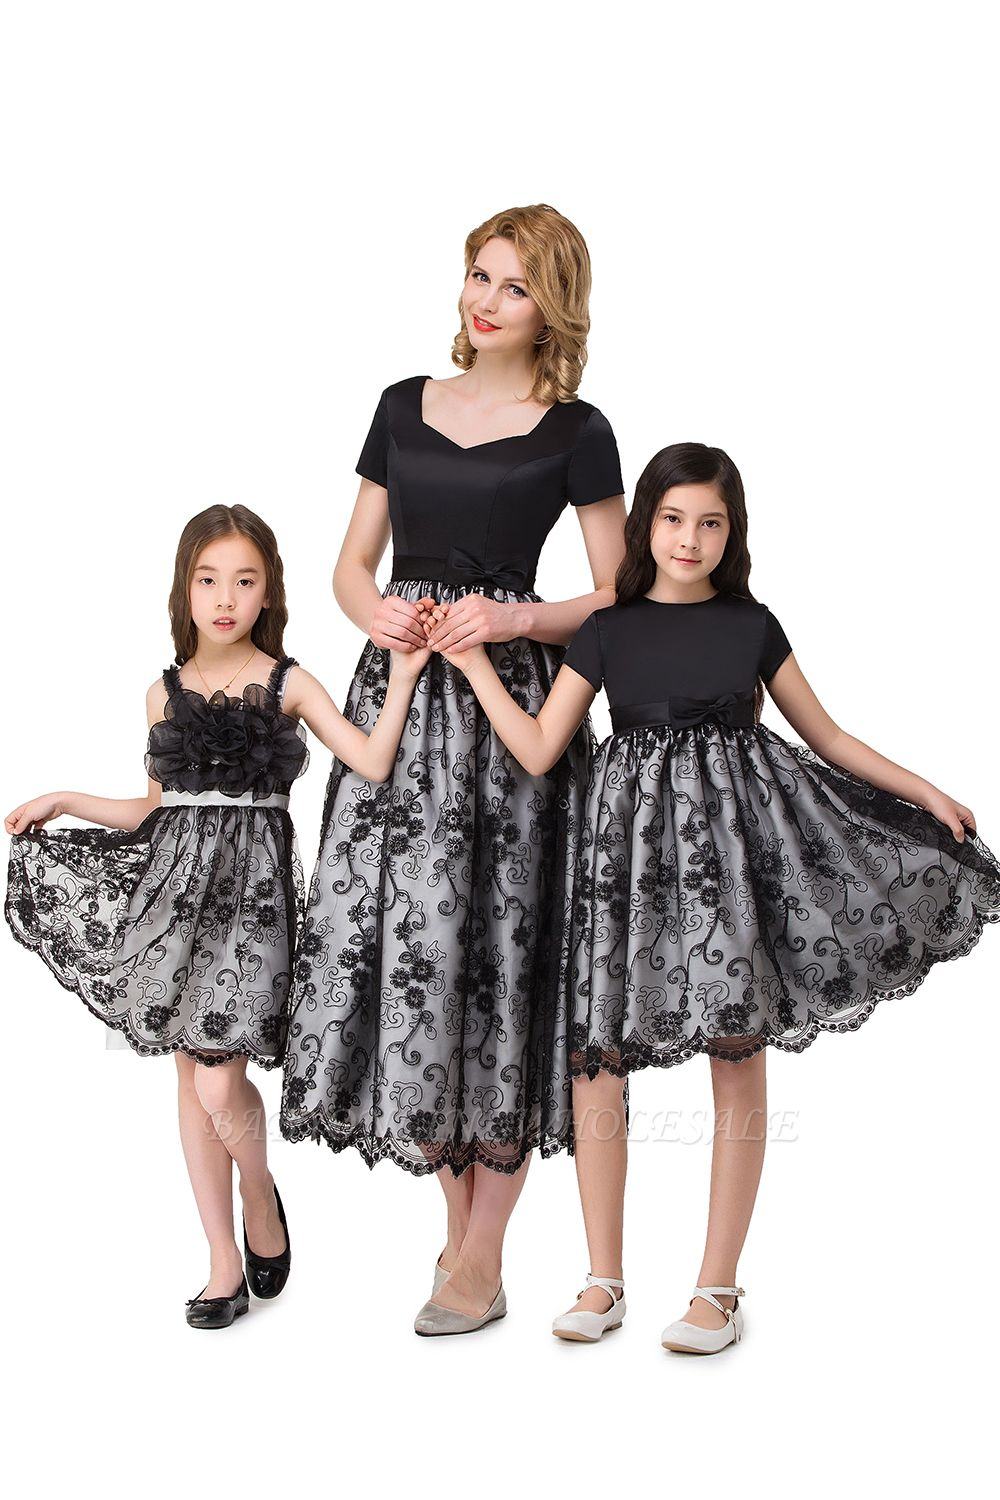 HEATHER| A-line Short Bowknot Flower Black Lace Mother Daughter Dresses